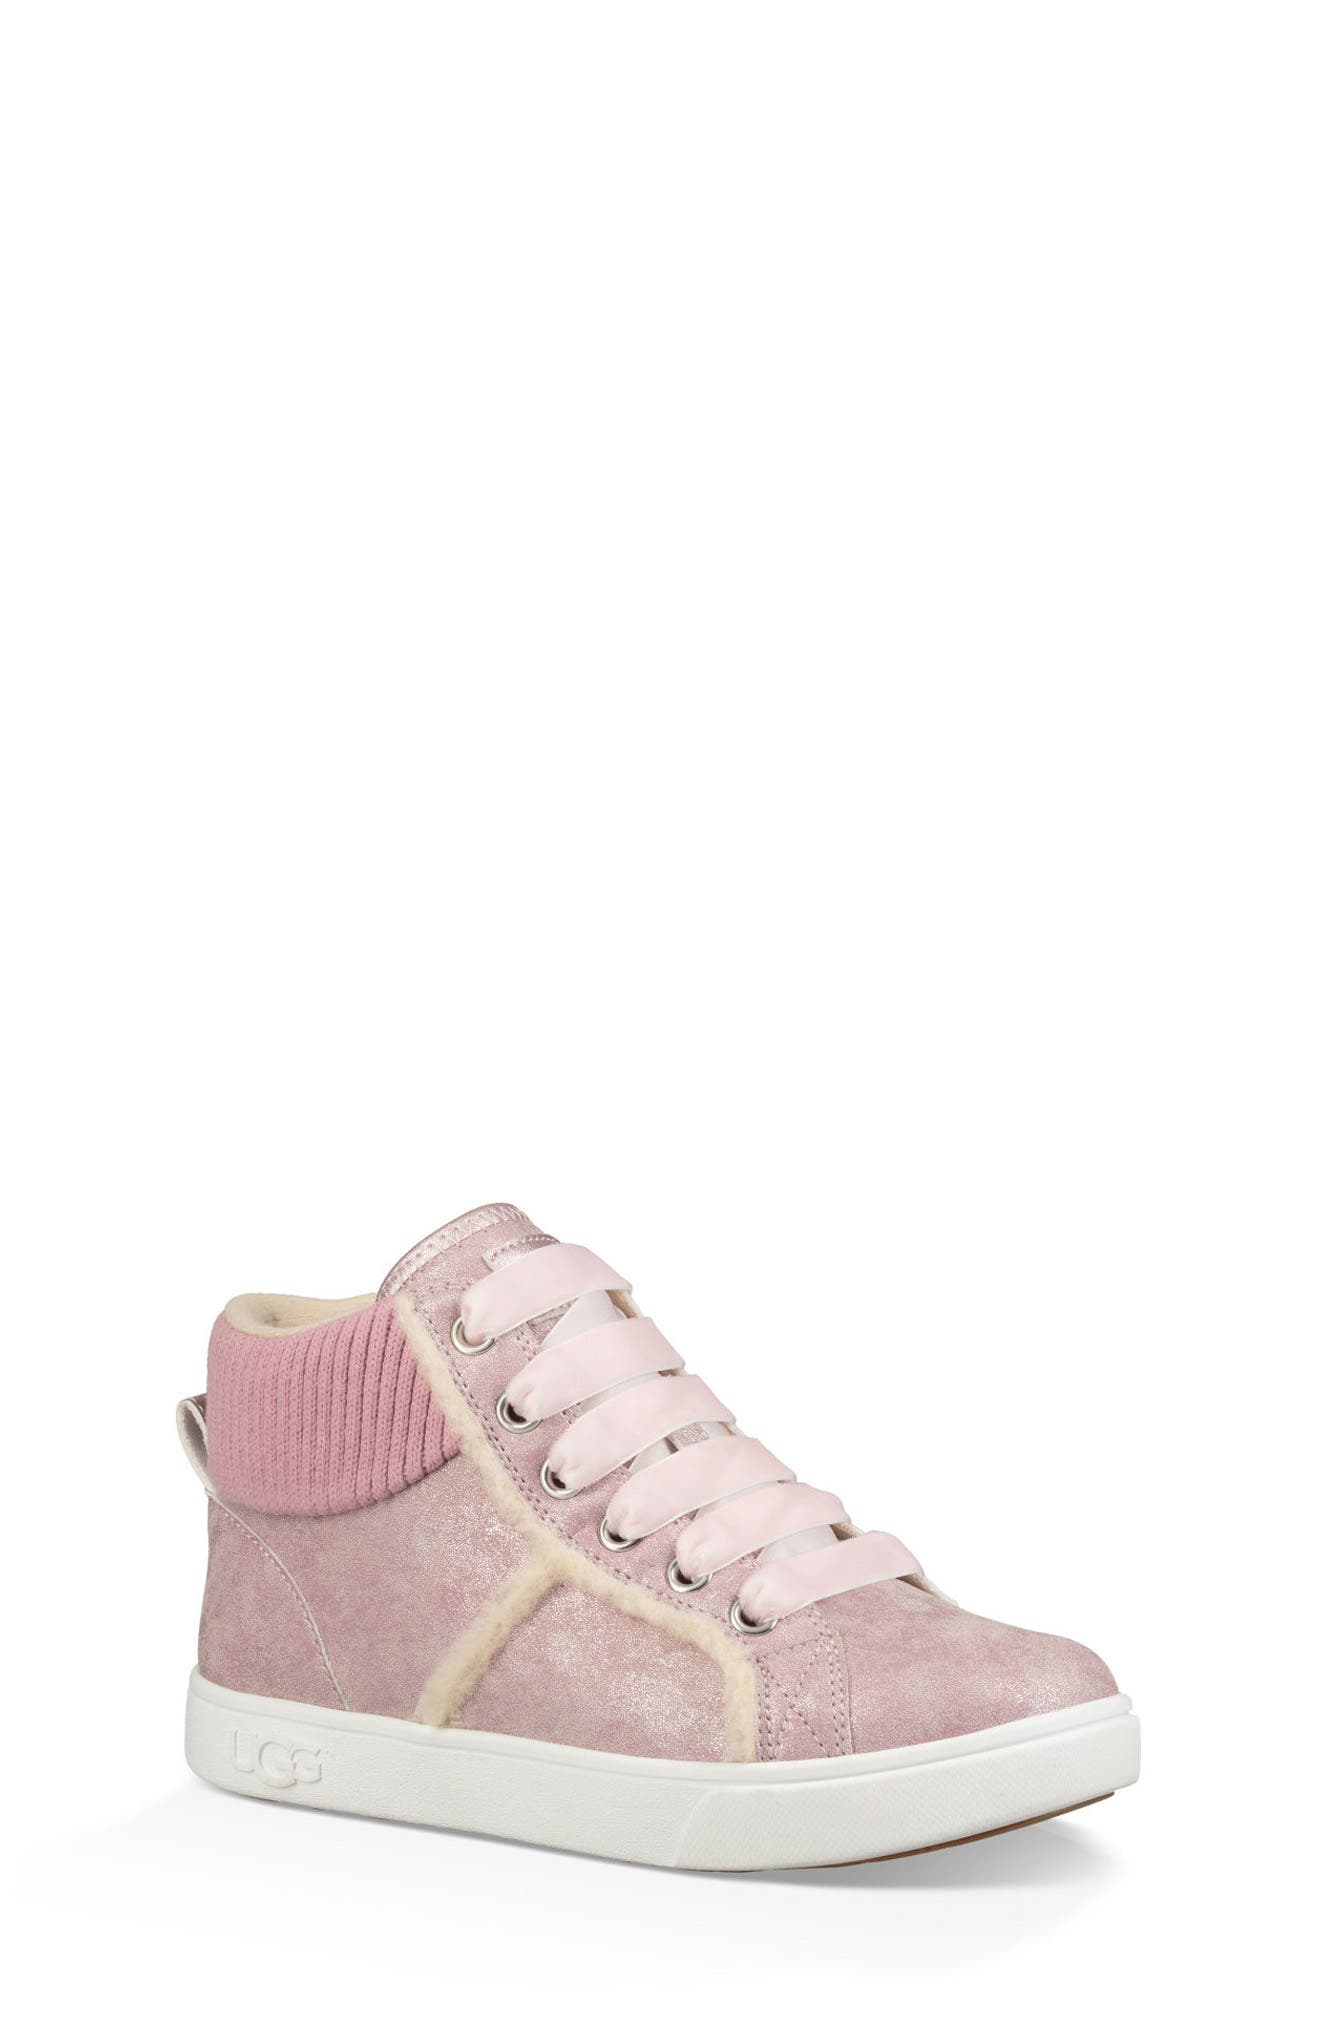 Addie Genuine Shearling High Top Sneaker,                             Main thumbnail 1, color,                             Cameo Pink